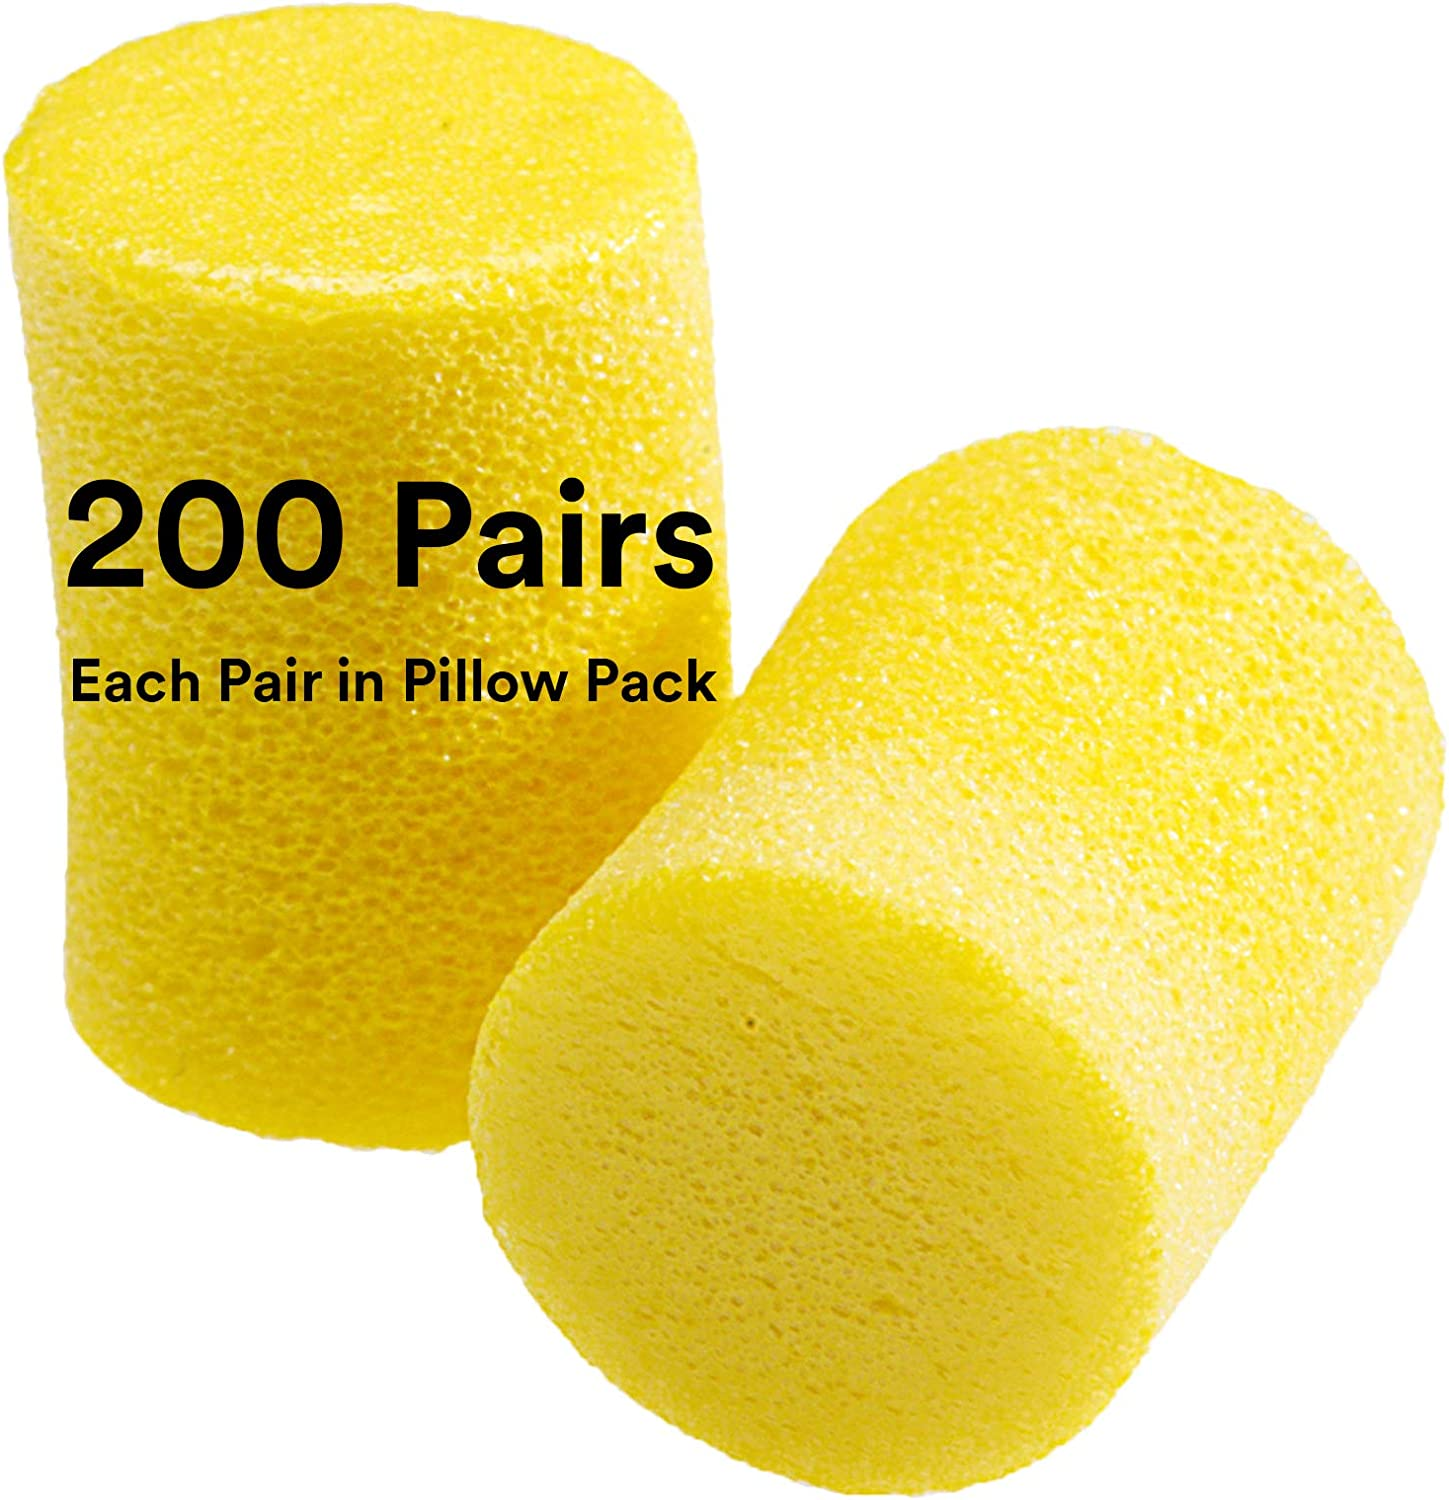 Translated 3M Ear Plugs 200 Pairs Box D Uncorded 310-1001 All items free shipping Classic E-A-R